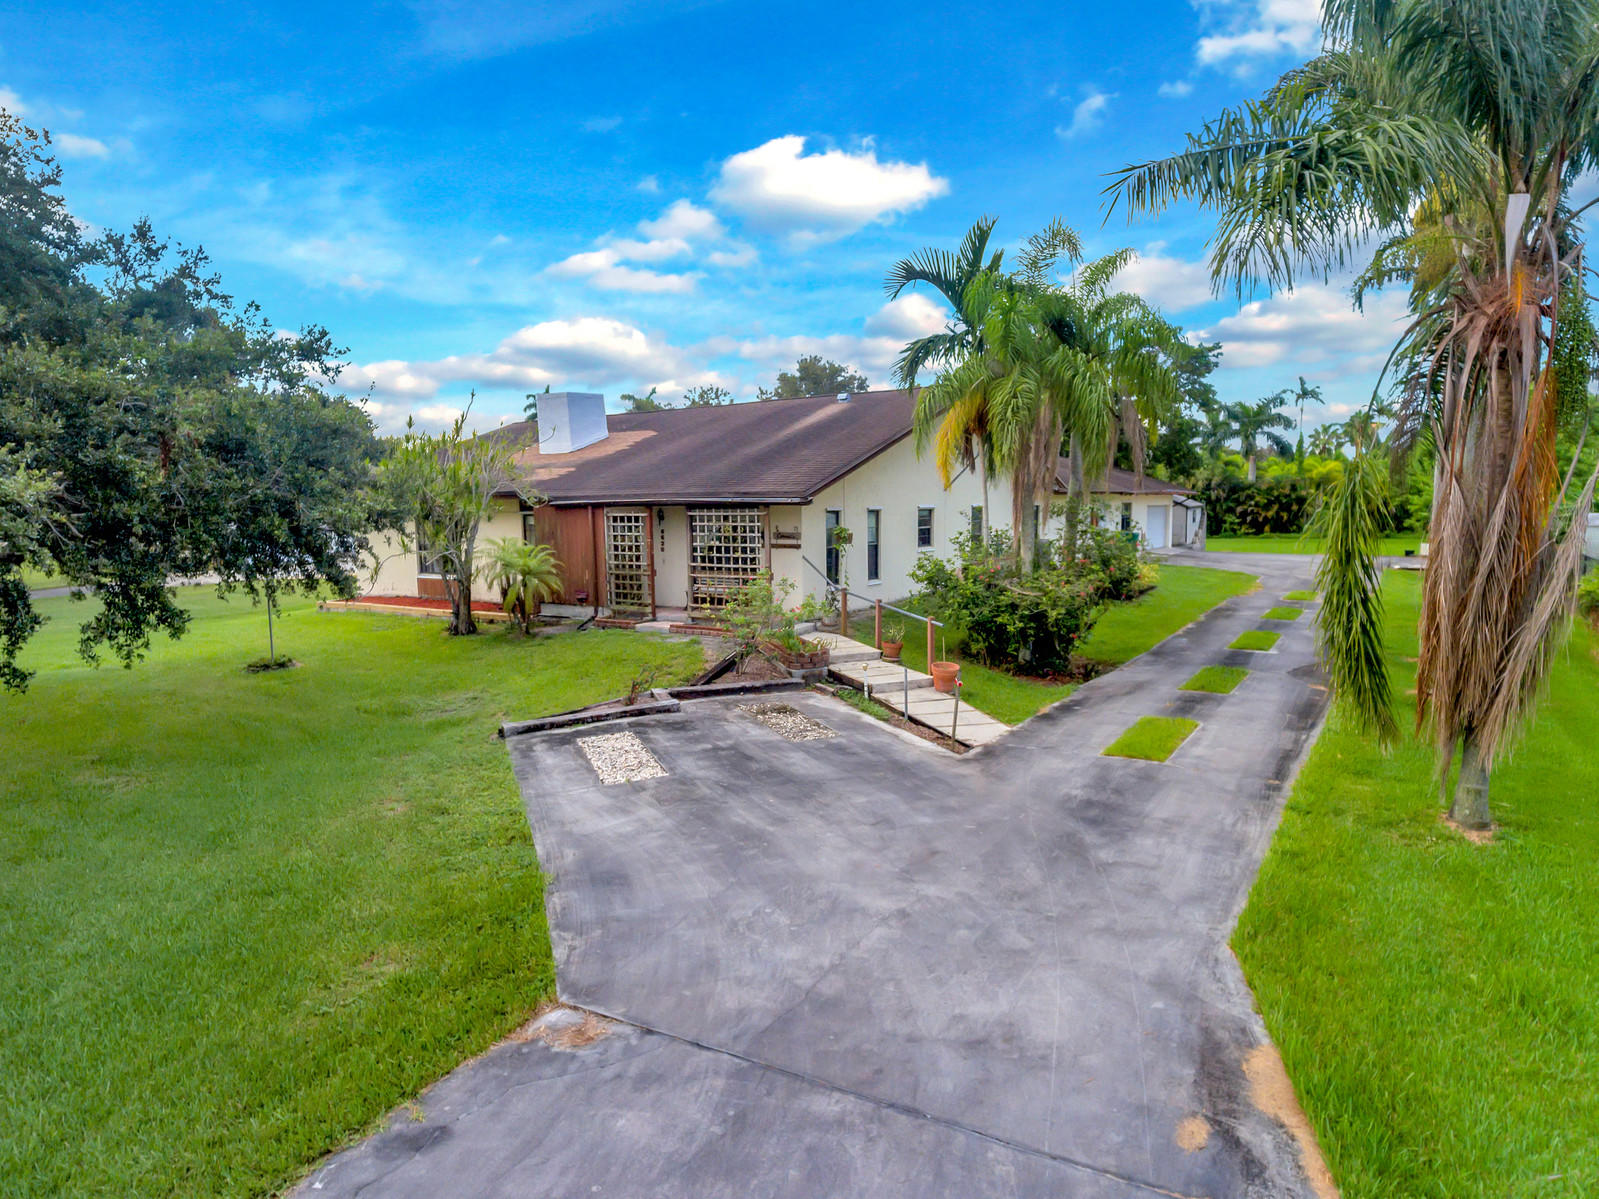 Home for sale in EVERGLADES LAND SALES CO SUB Davie Florida